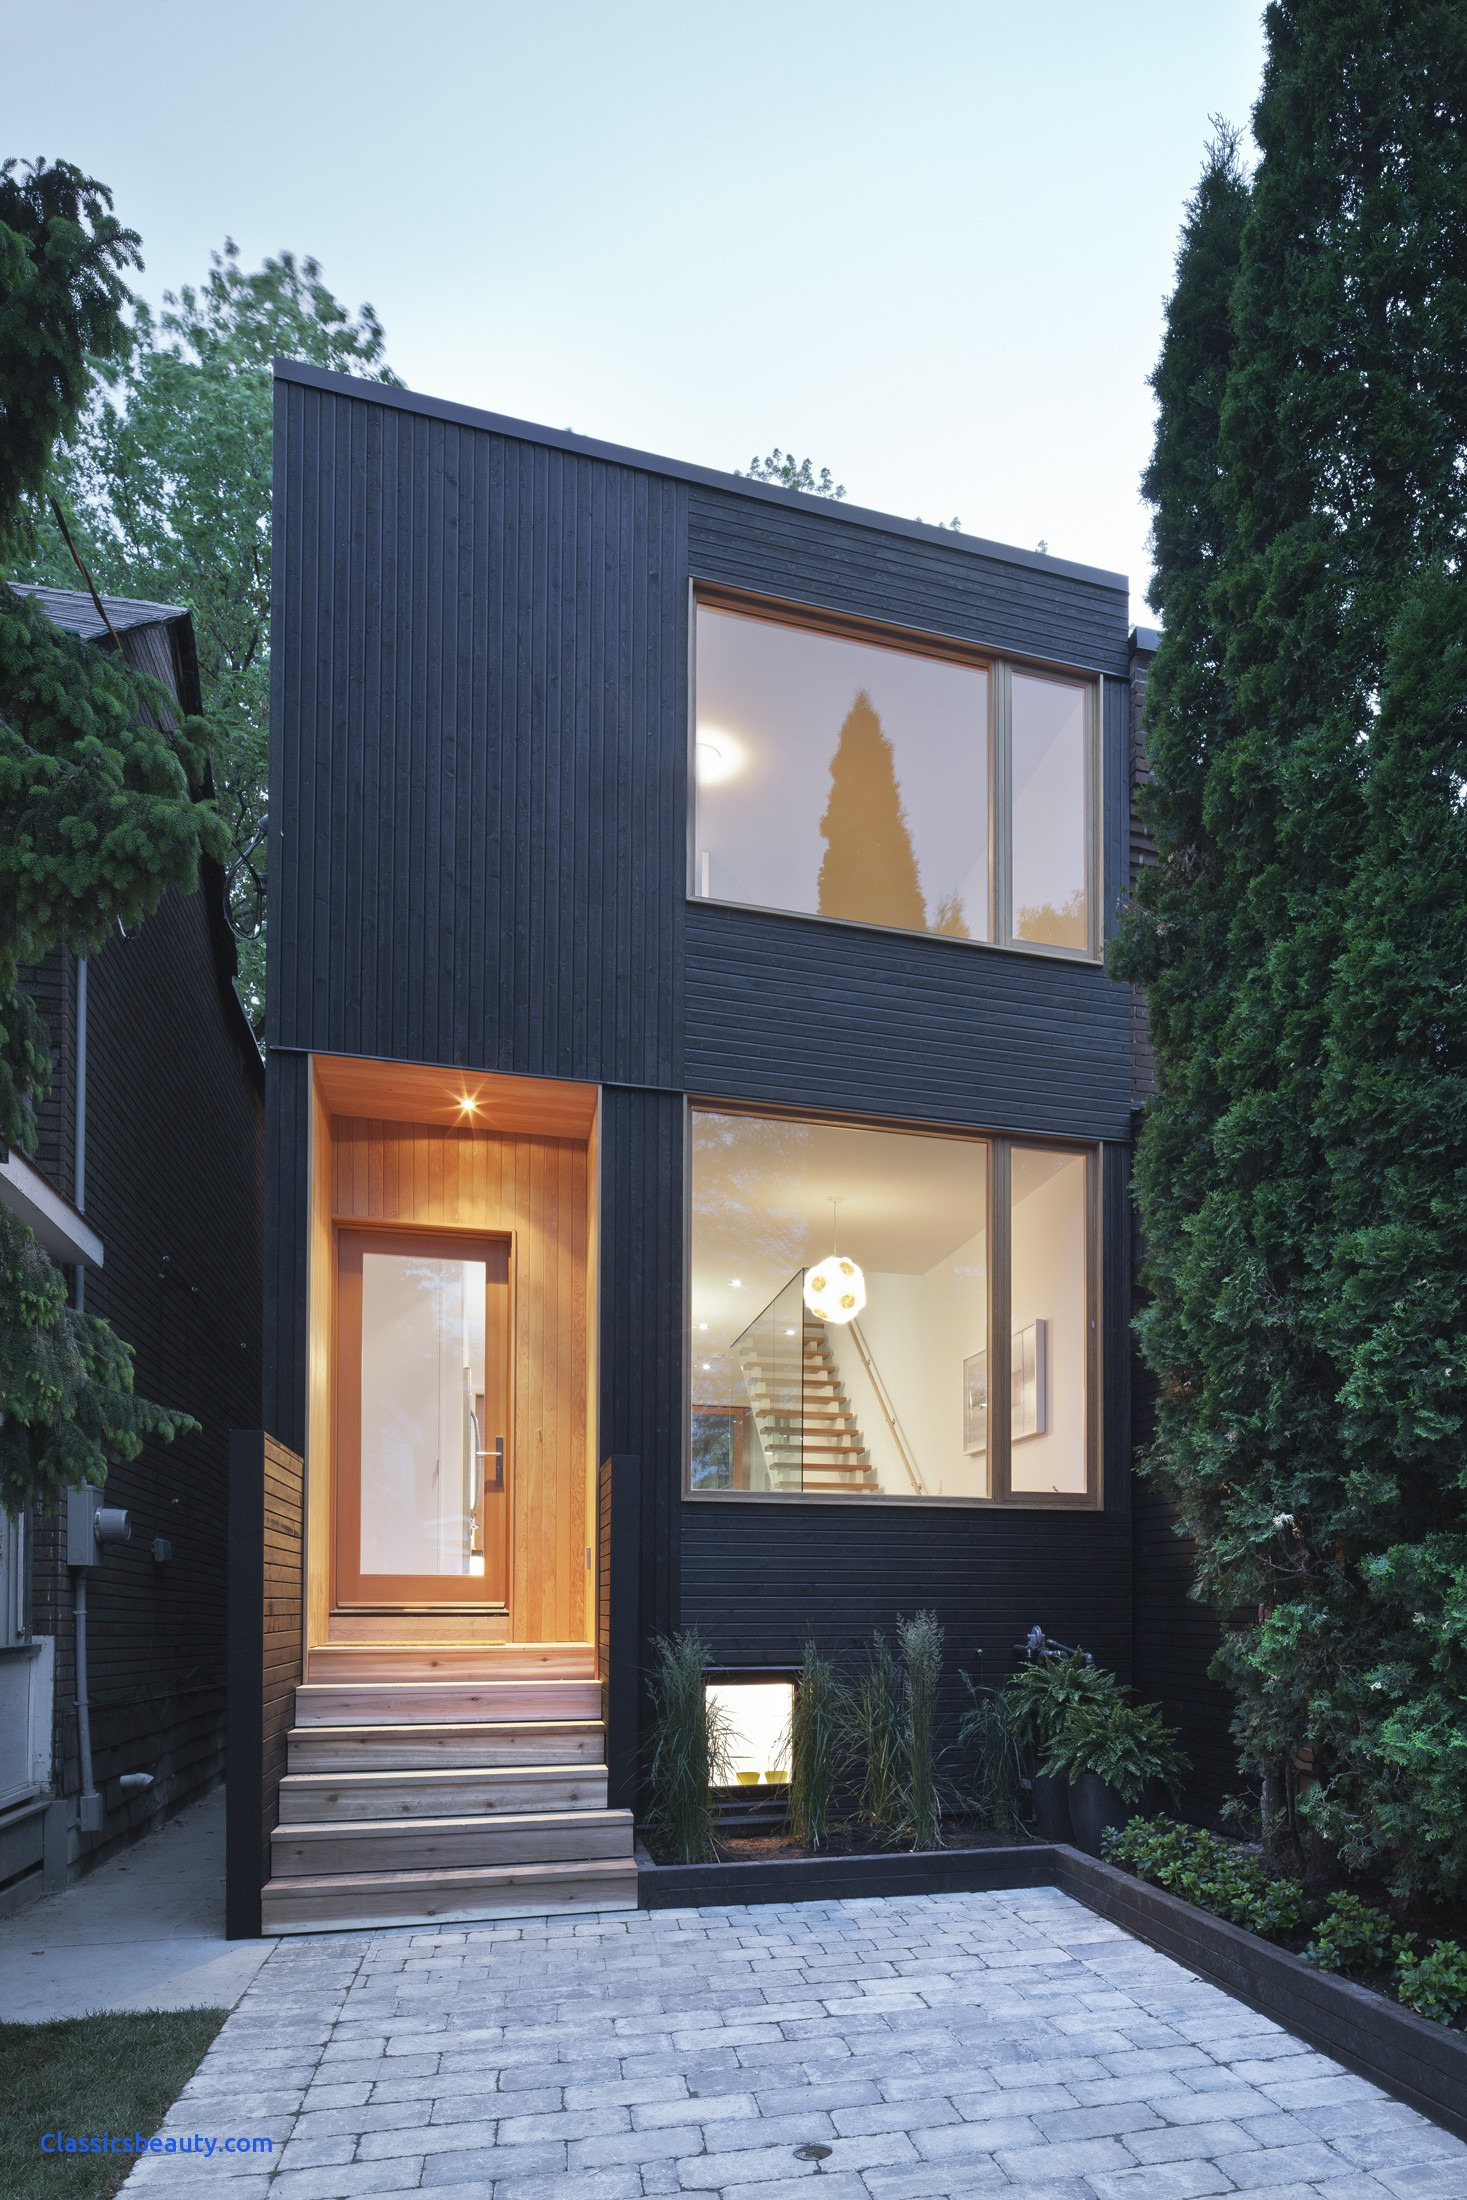 Inexpensive Houses to Build Awesome Small Affordable Homes Elegant top Modular Inexpensive